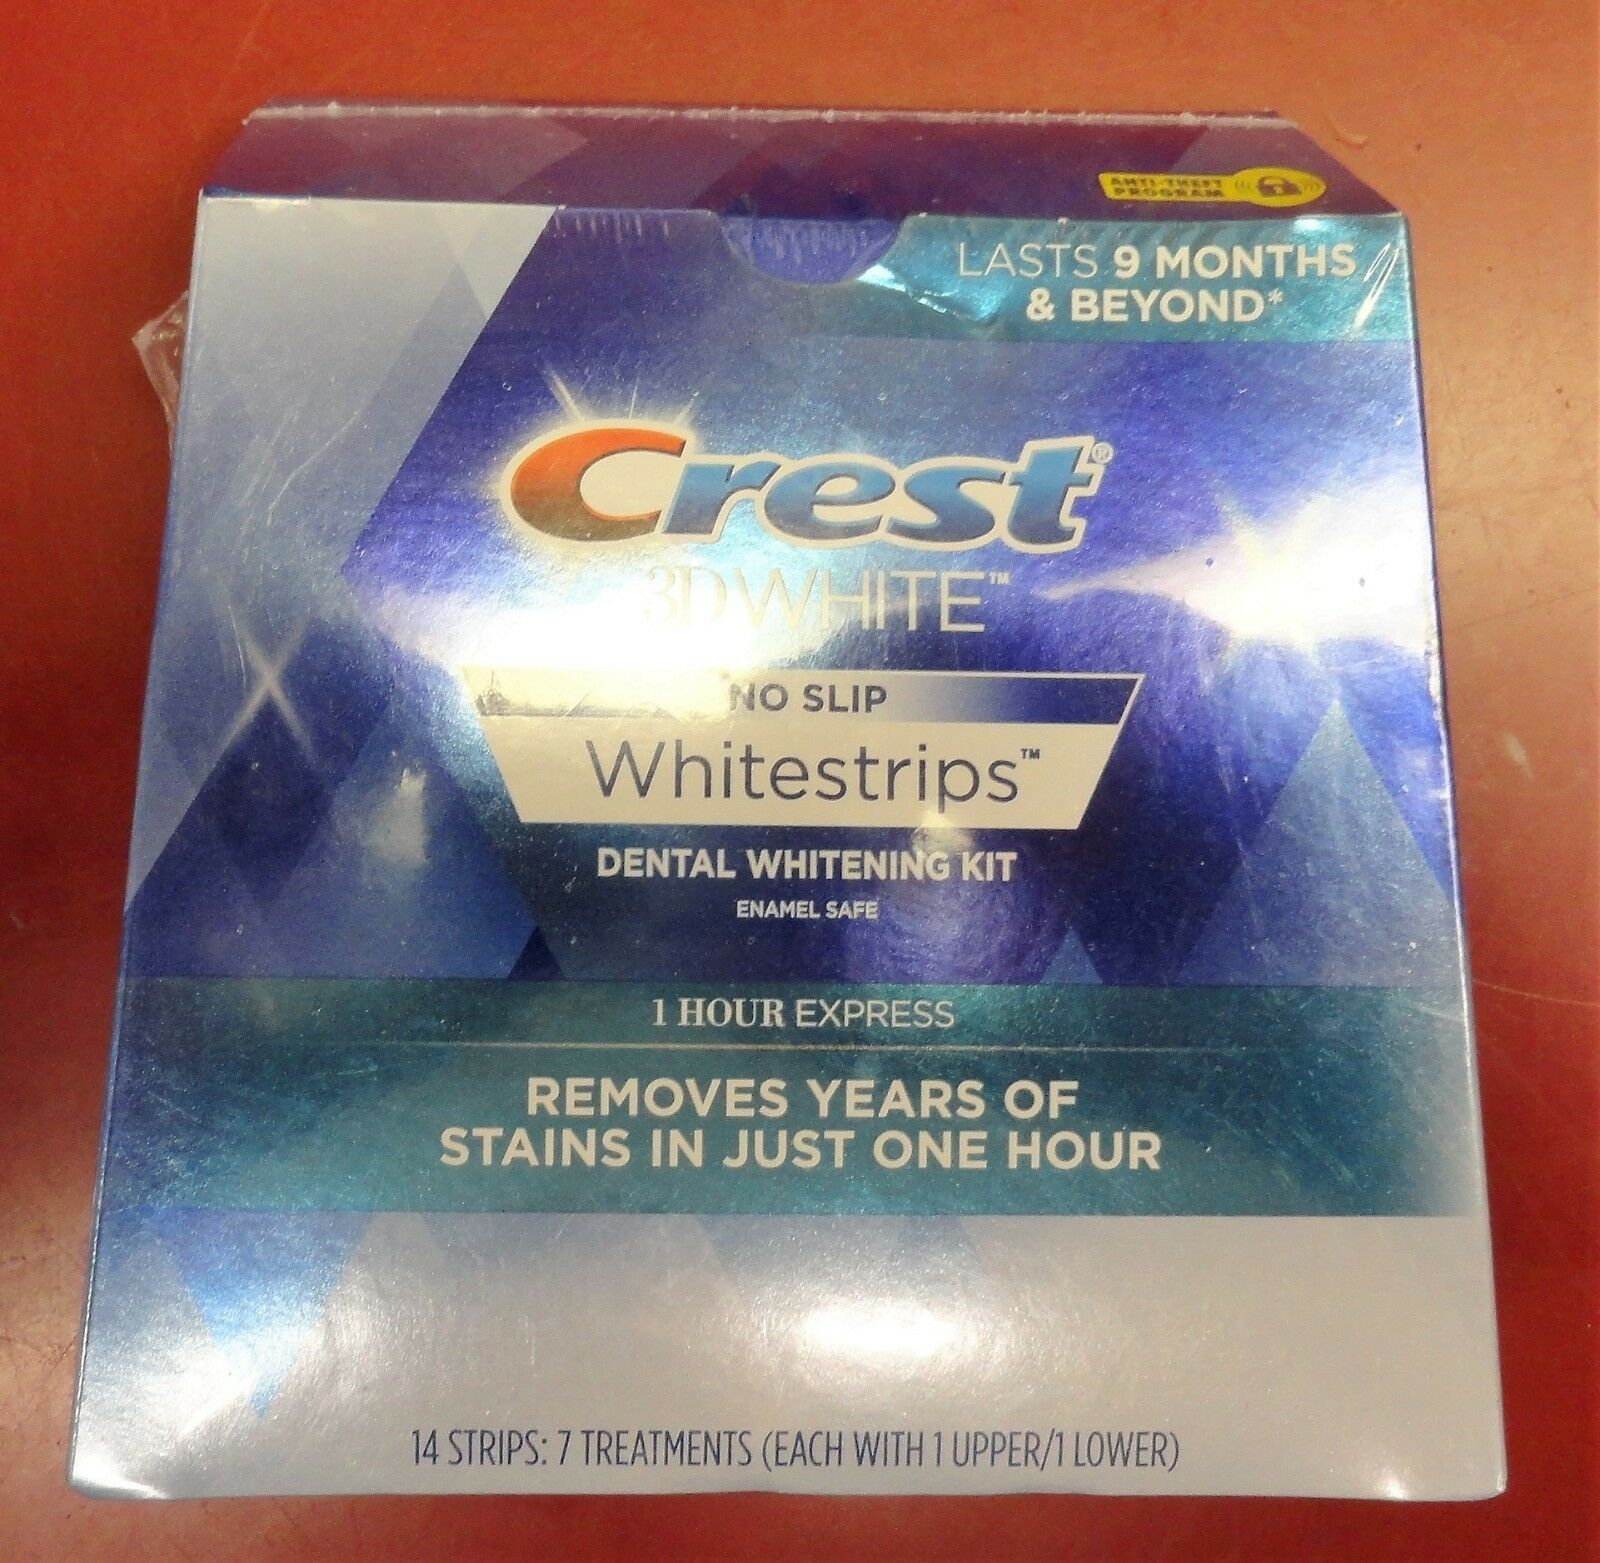 Crest 3D WHITE No Slip Whitestrips 1 HOUR EXPRESS 14 Strips.